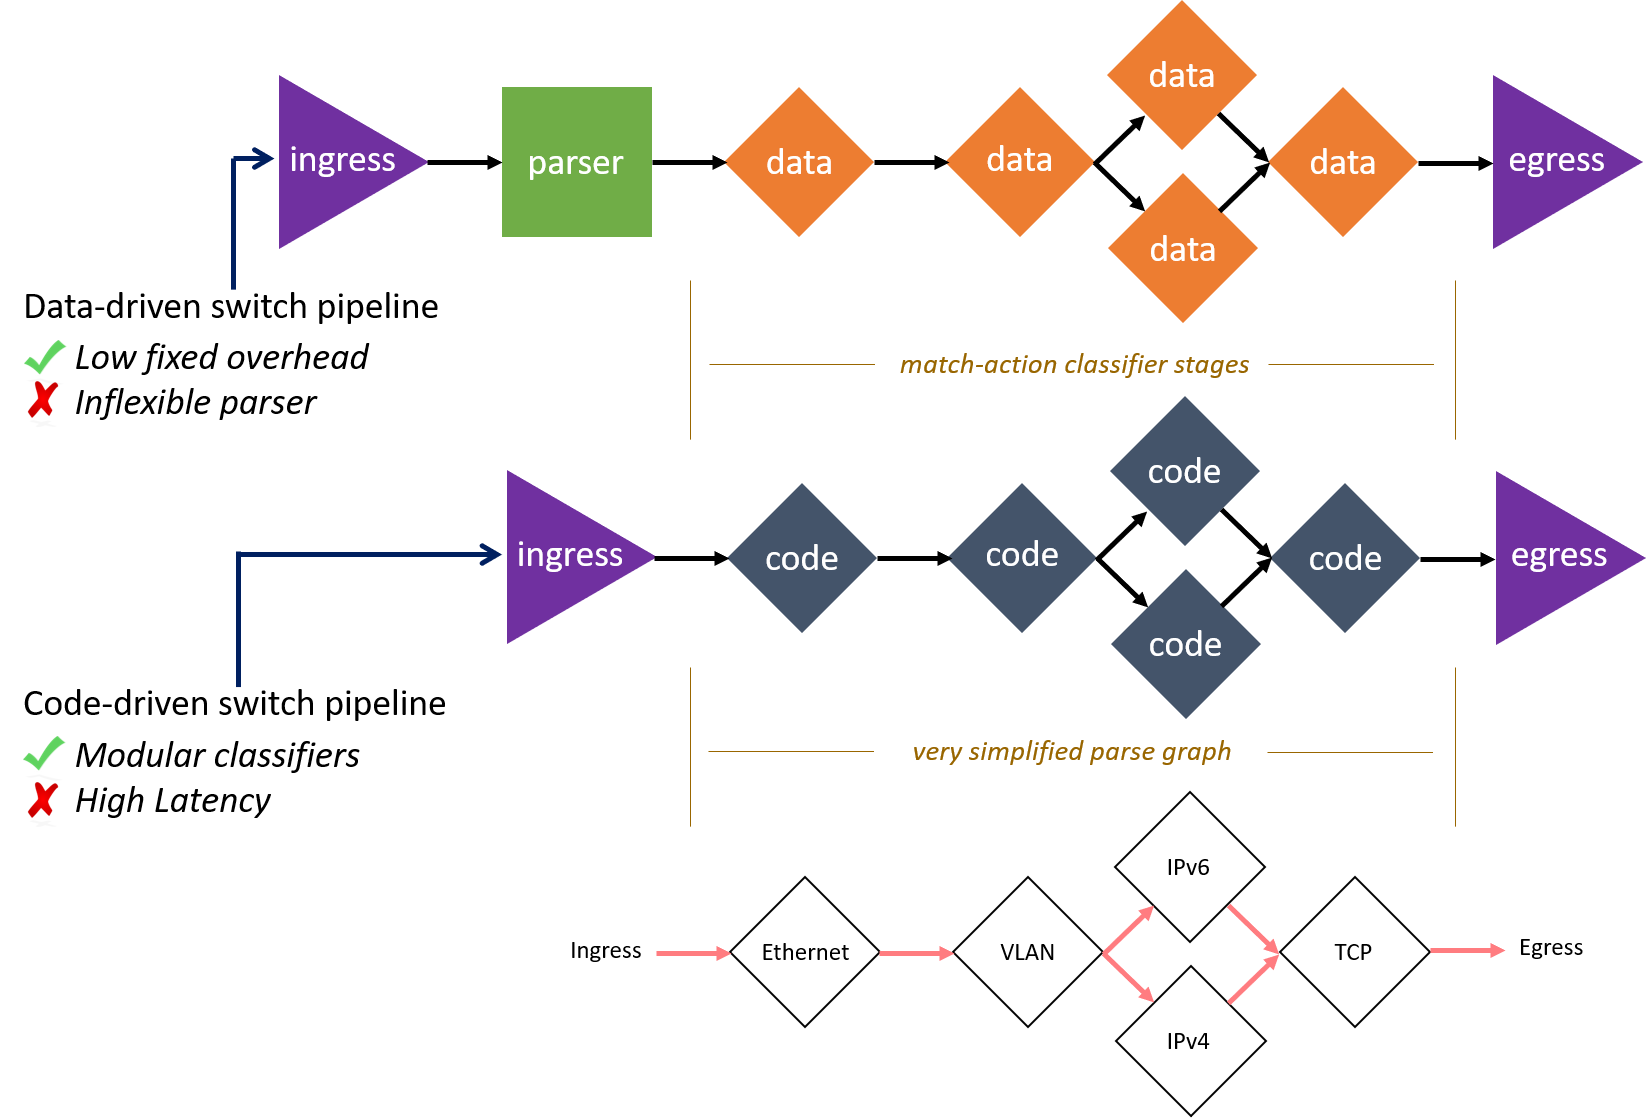 simplified-data-driven-code-driven-switch-pipeline